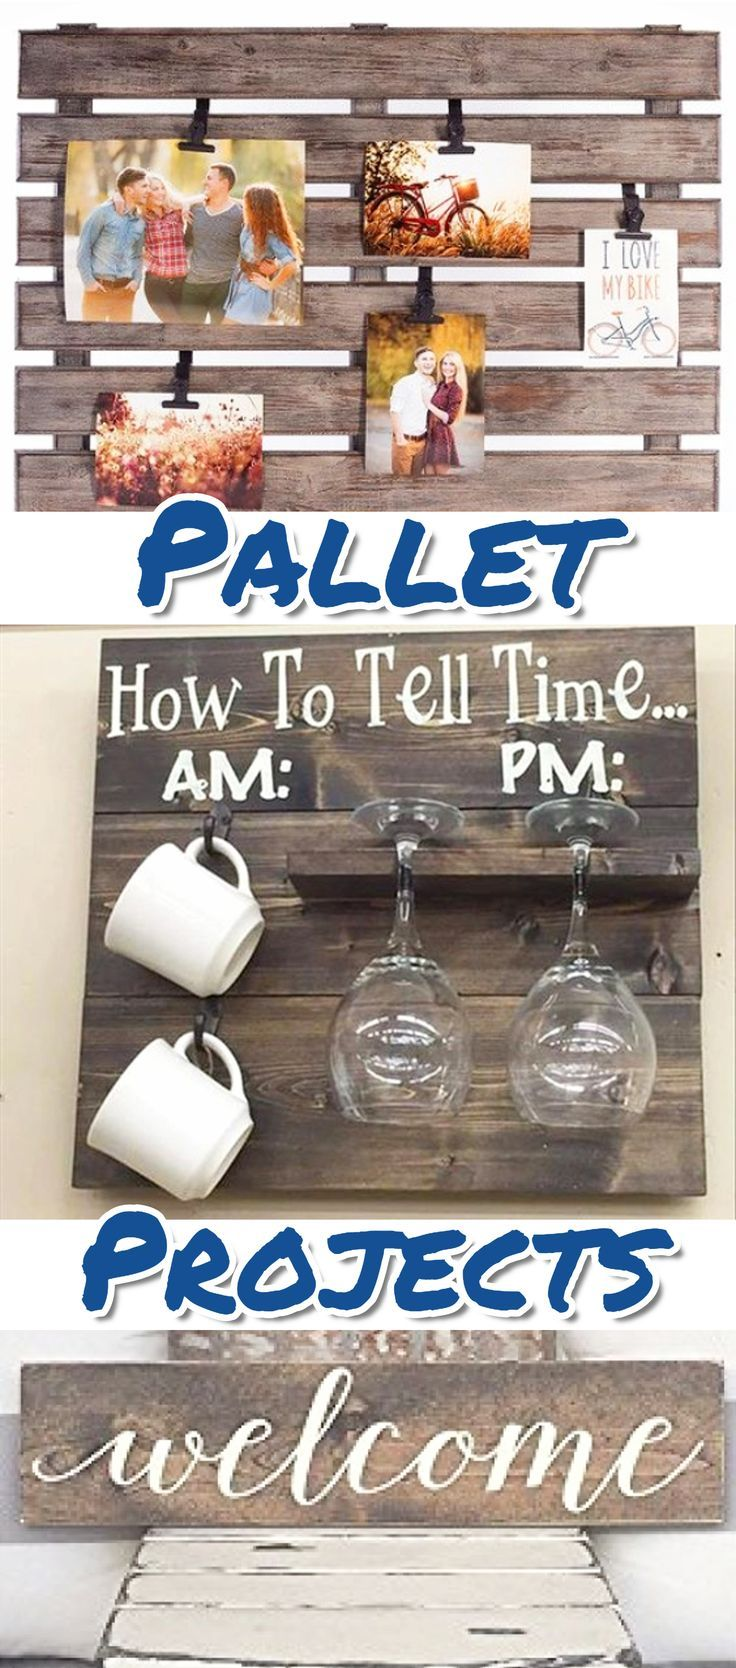 DIY pallet projects  - things to make with old pallet wood.  Fun ideas to repurpose and upcycle! #DiyPalletProjects #palletproject #PalletWood #diy